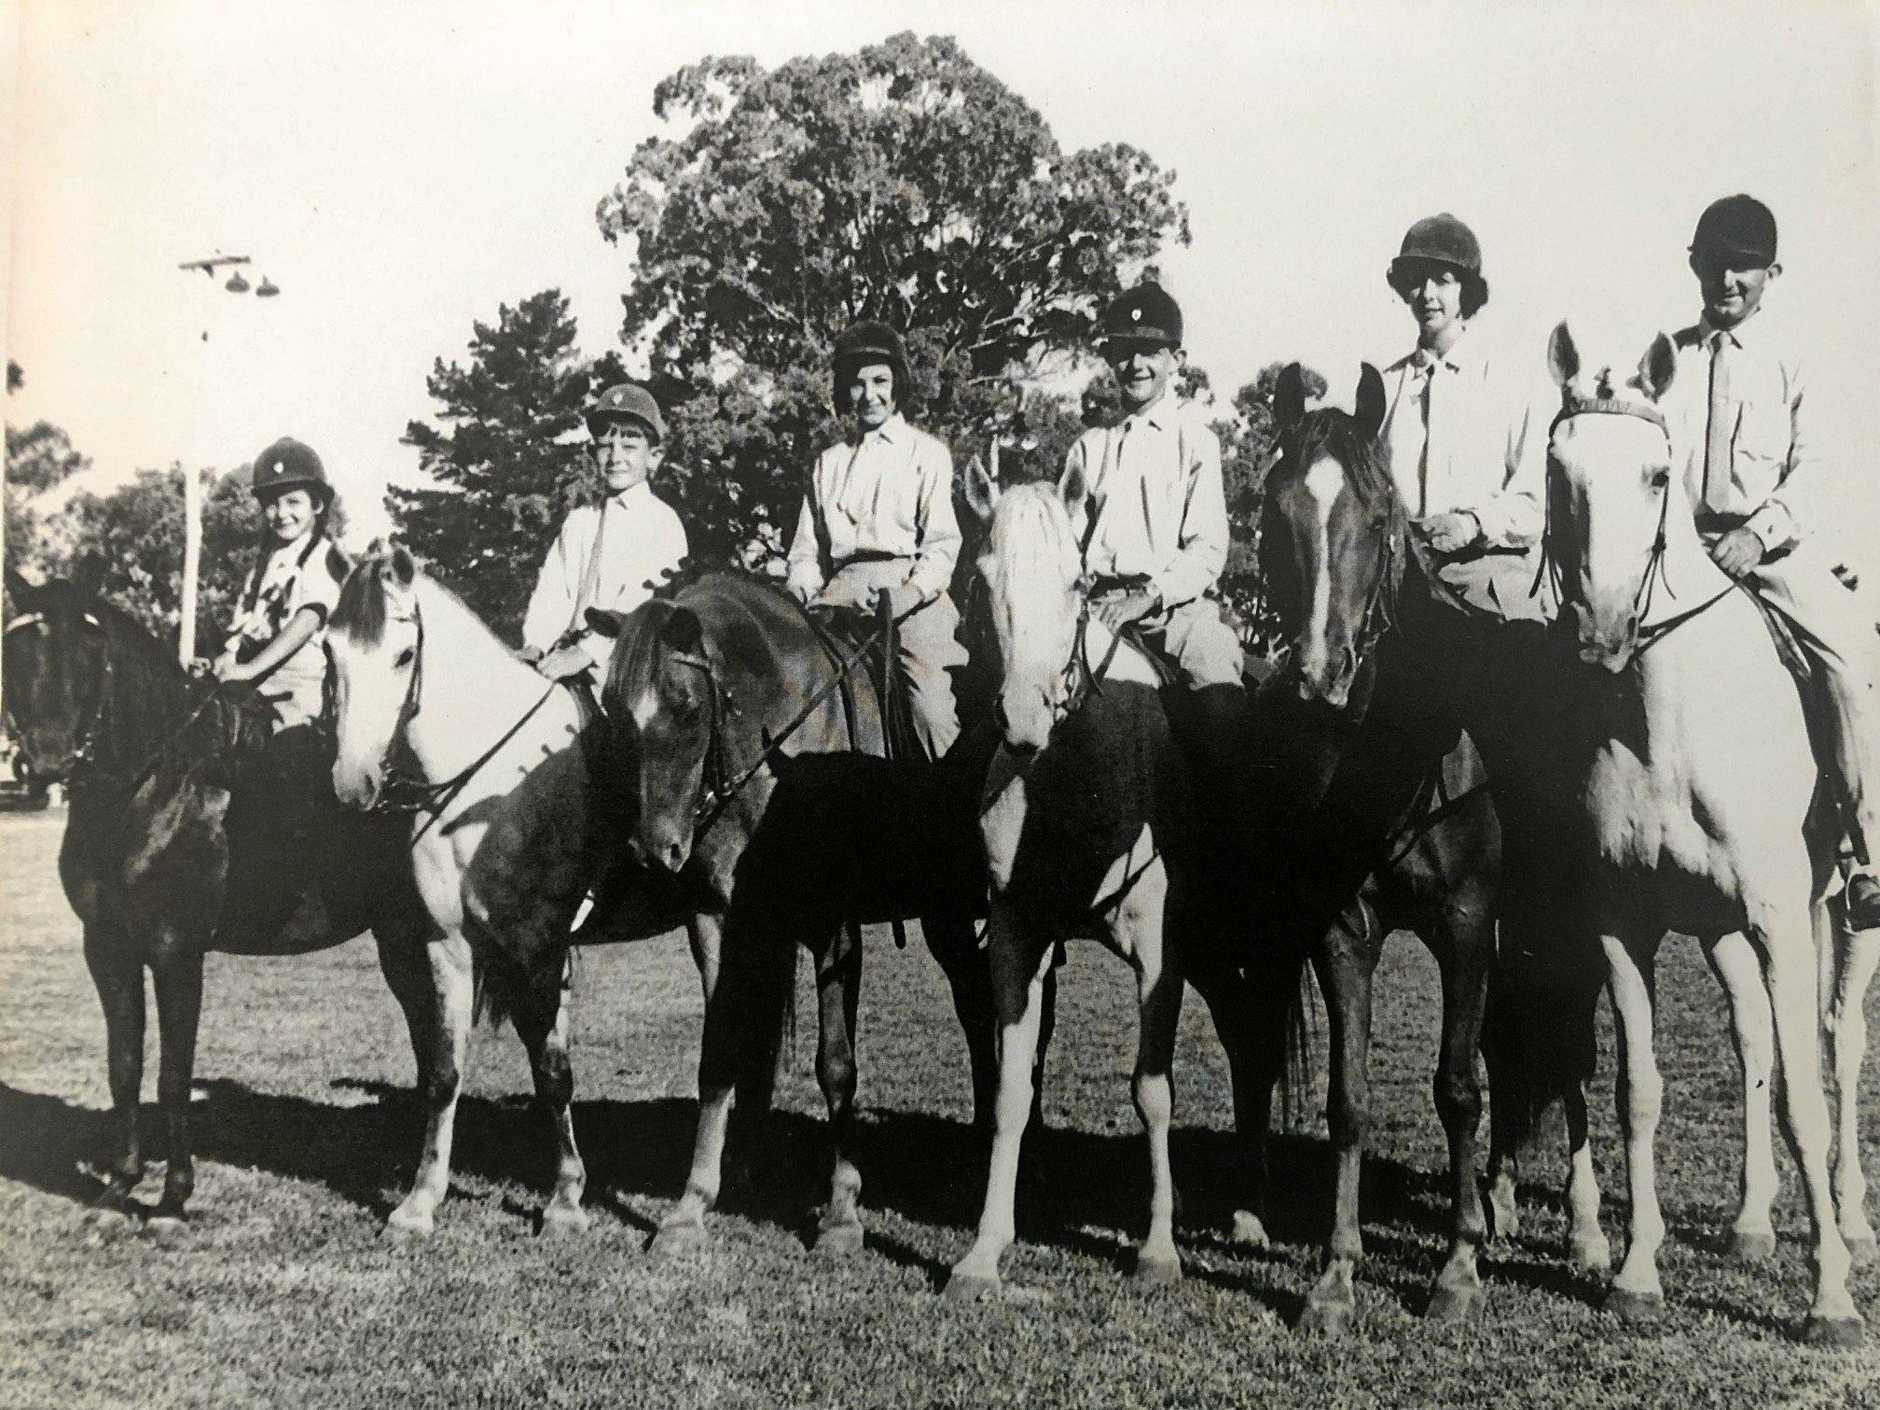 The Bondfield family at the Stanthorpe Show in 1968 (Valerie is second from the right).